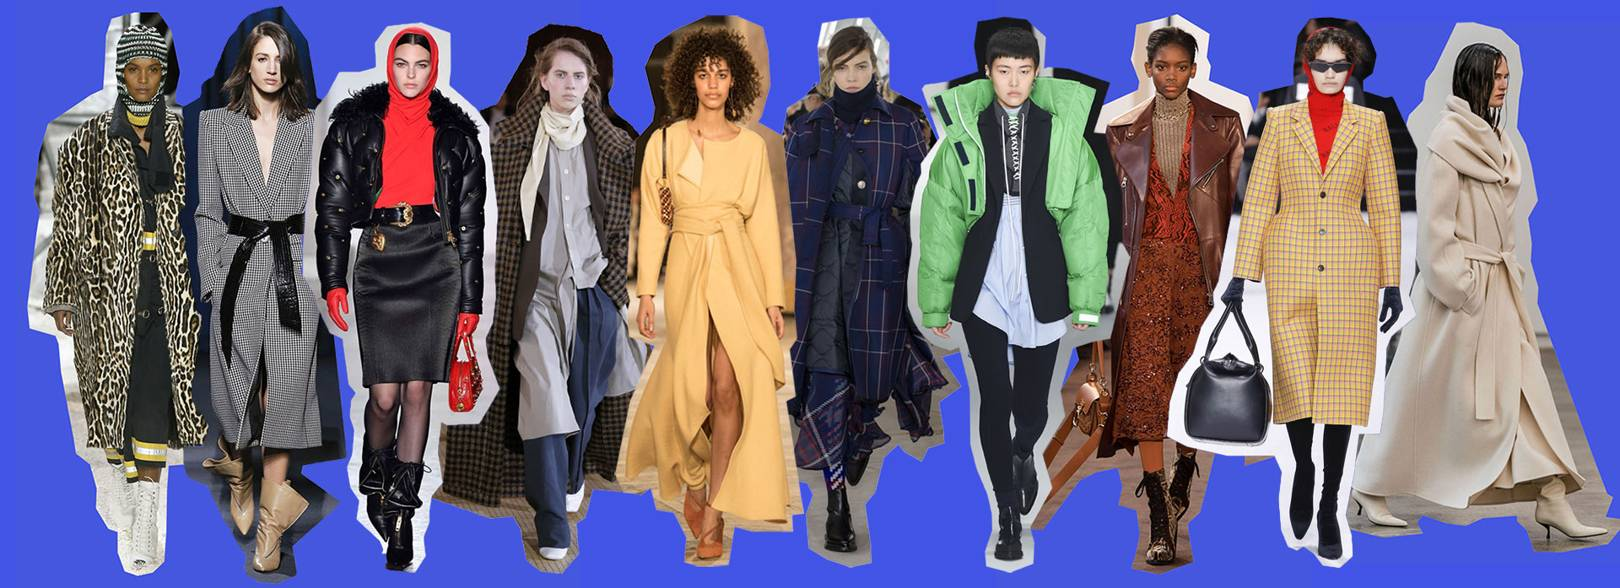 04a48afdb0 Best Winter Coats 2018 | The Women's Winter Coats To Buy Now | British Vogue